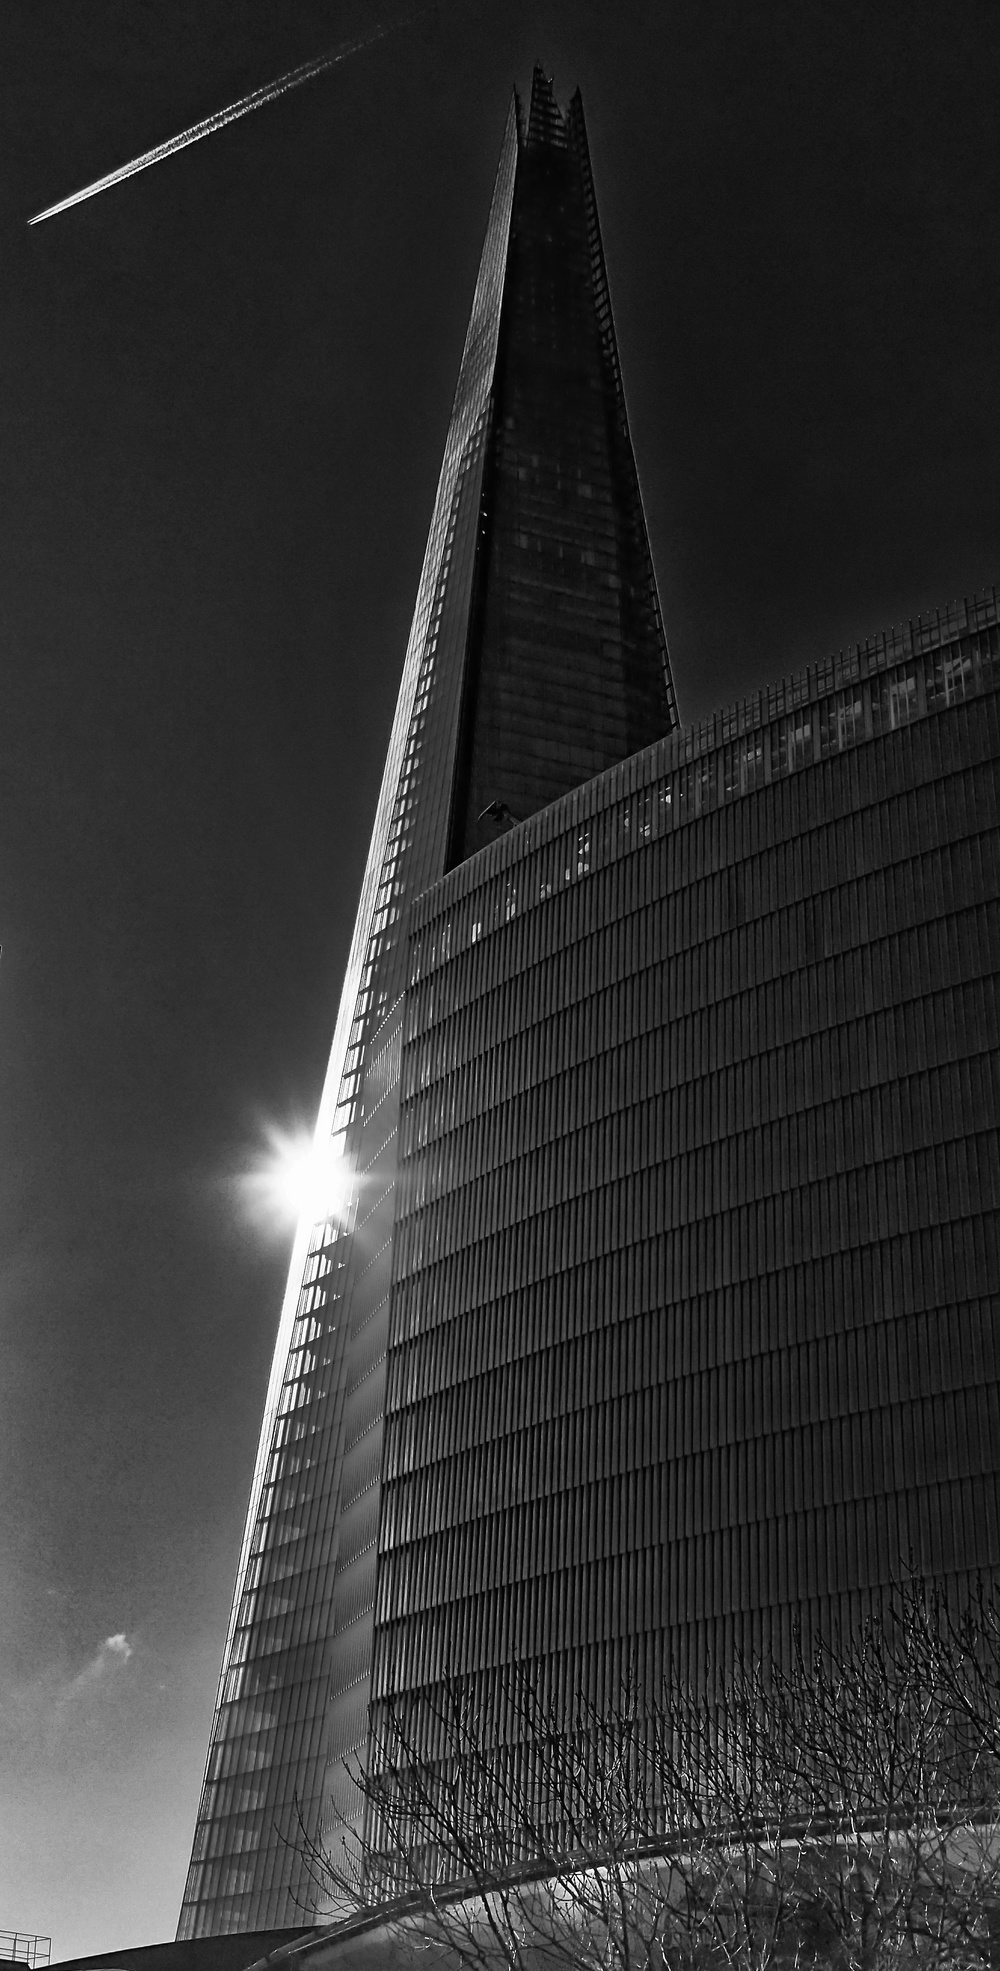 ​Shard, London Bridge, 6 Apr EP-3 Lumix 20mm f1.7